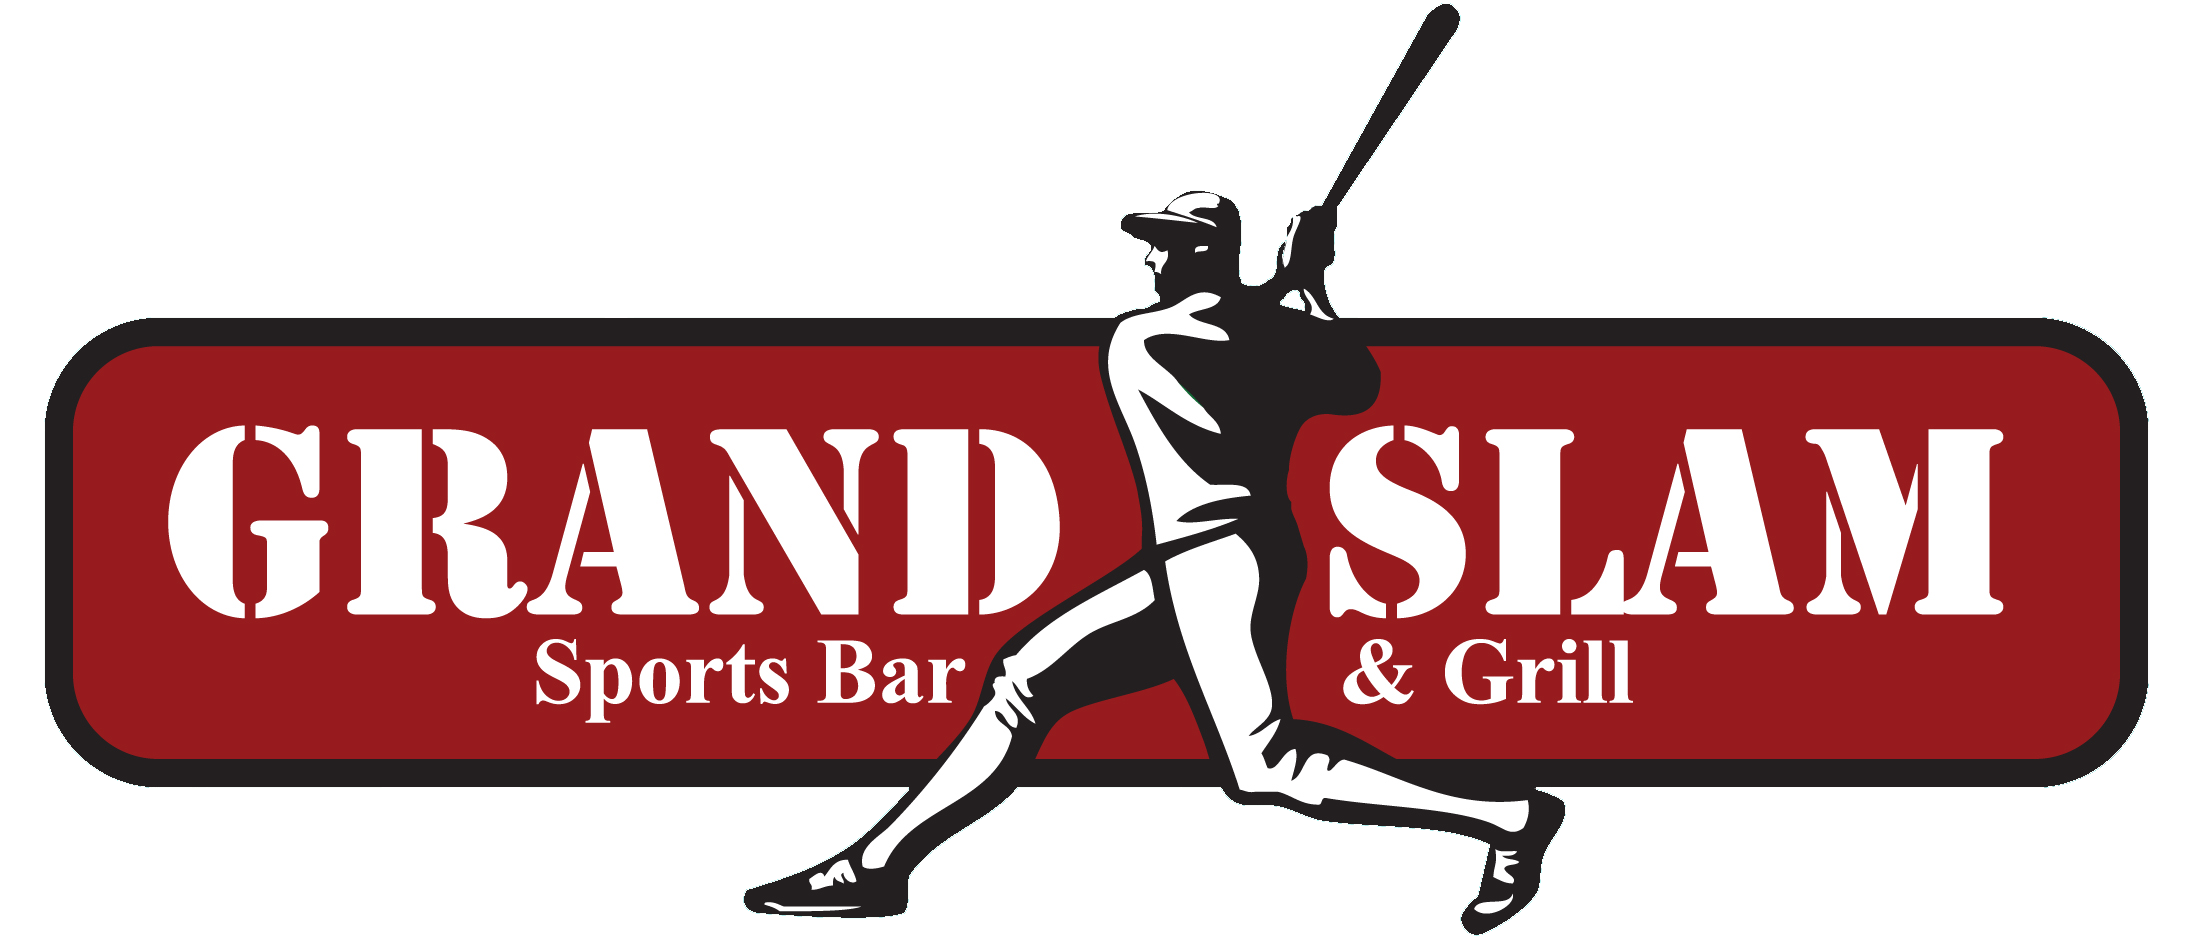 Grand slam baseball wording clipart clipart free Home - Grand Slam Sports Bar & Grill clipart free